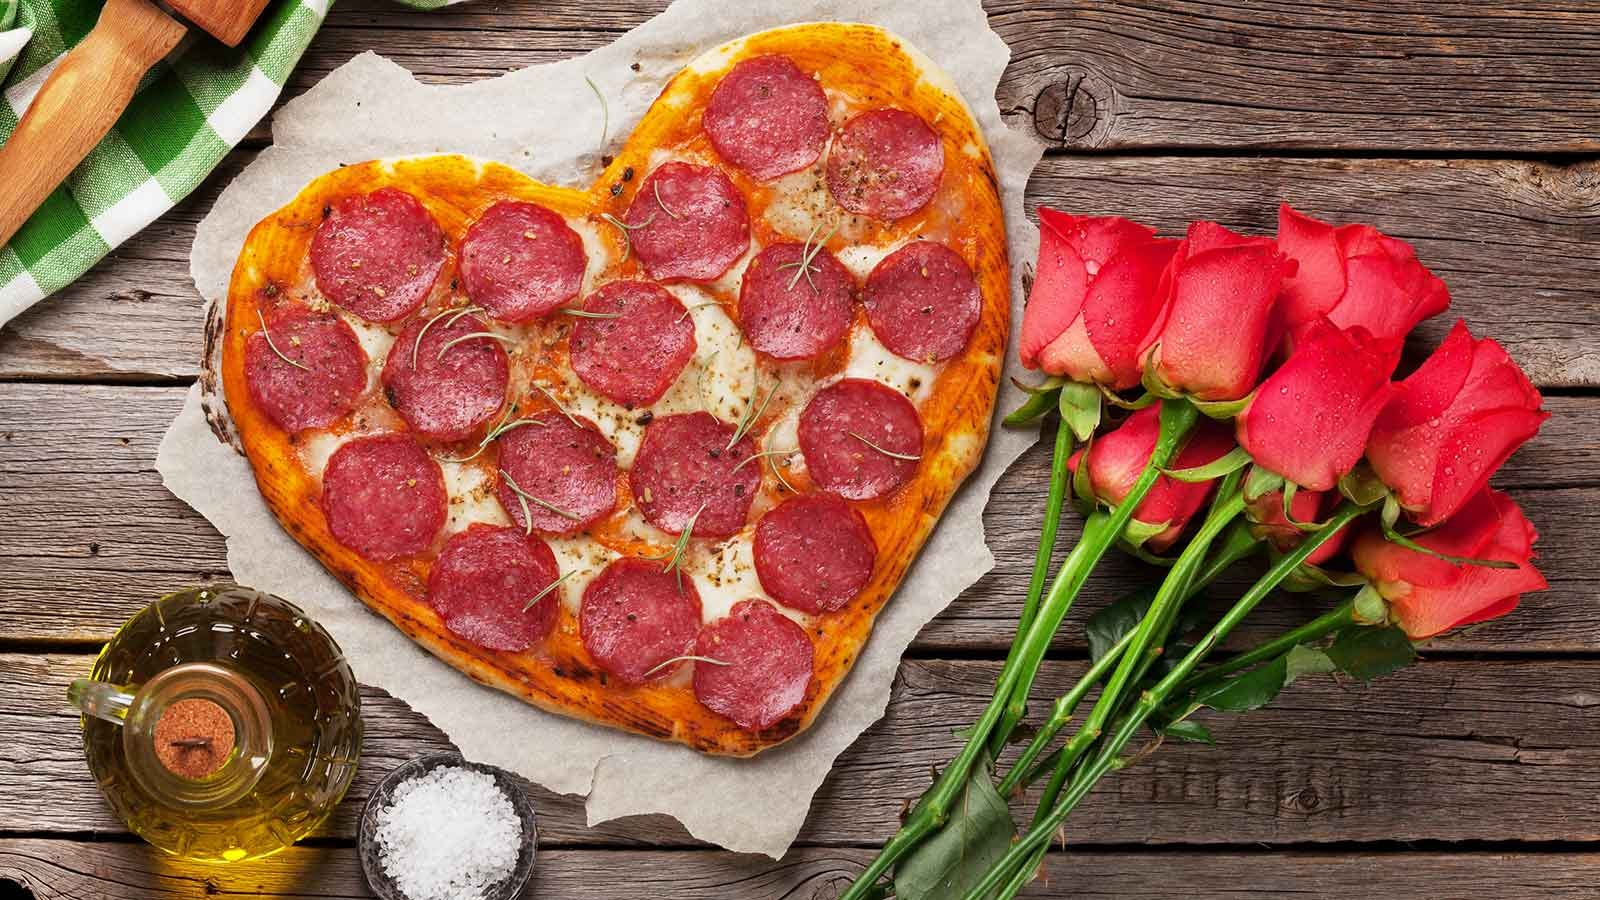 A heart-shaped pepperoni pizza on a wooden table next to a bouquet of roses.